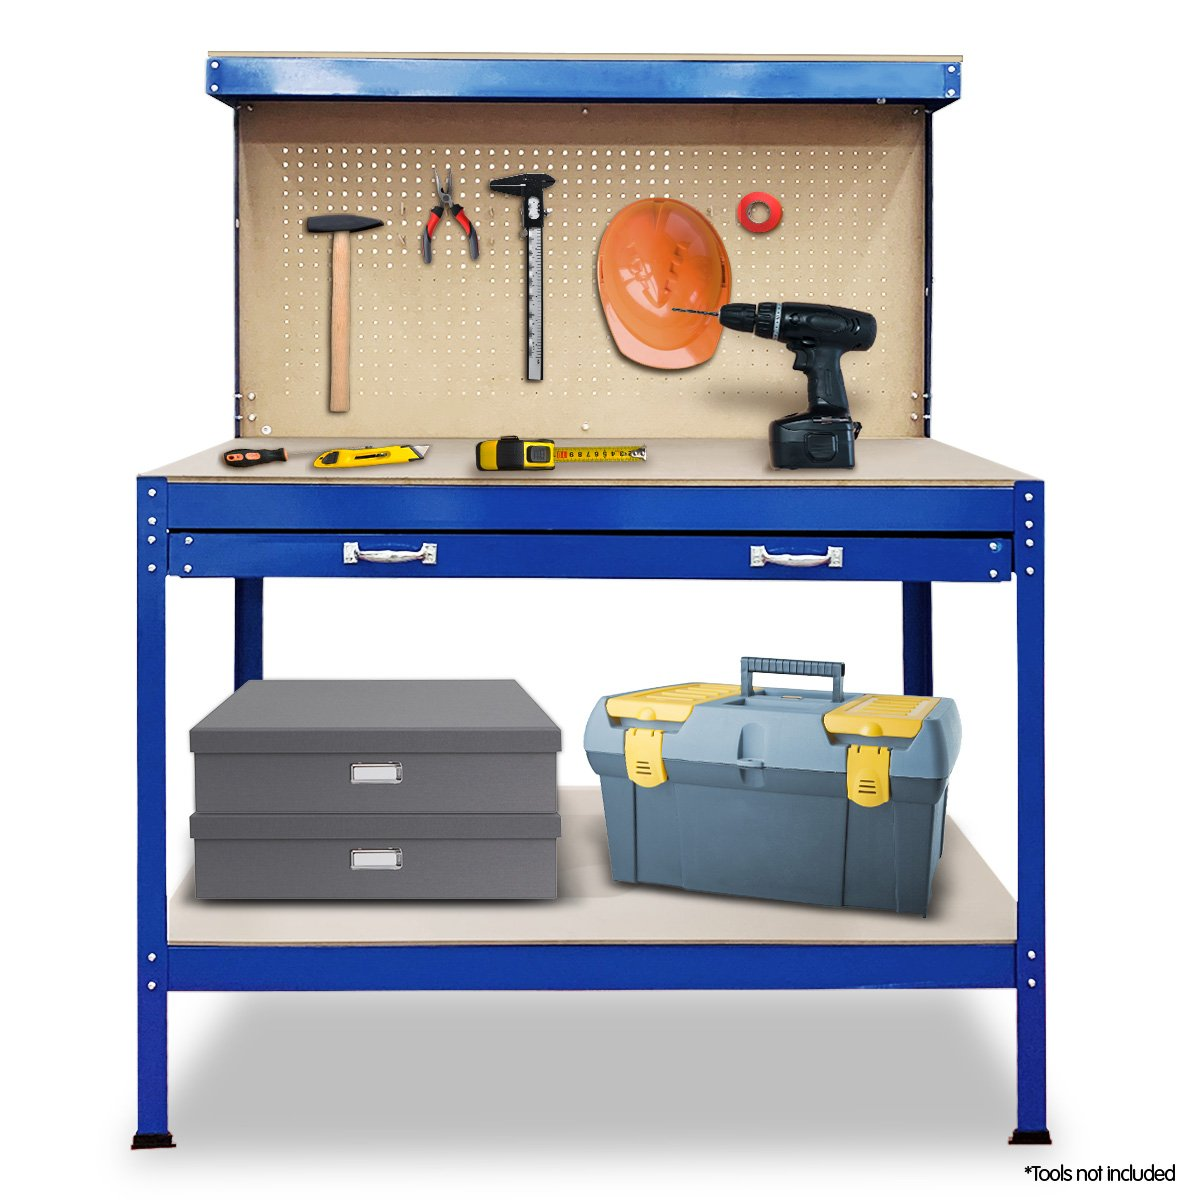 2-Layered Work Bench Garage Storage Table Tool Shop Shelf Blue - $240.9